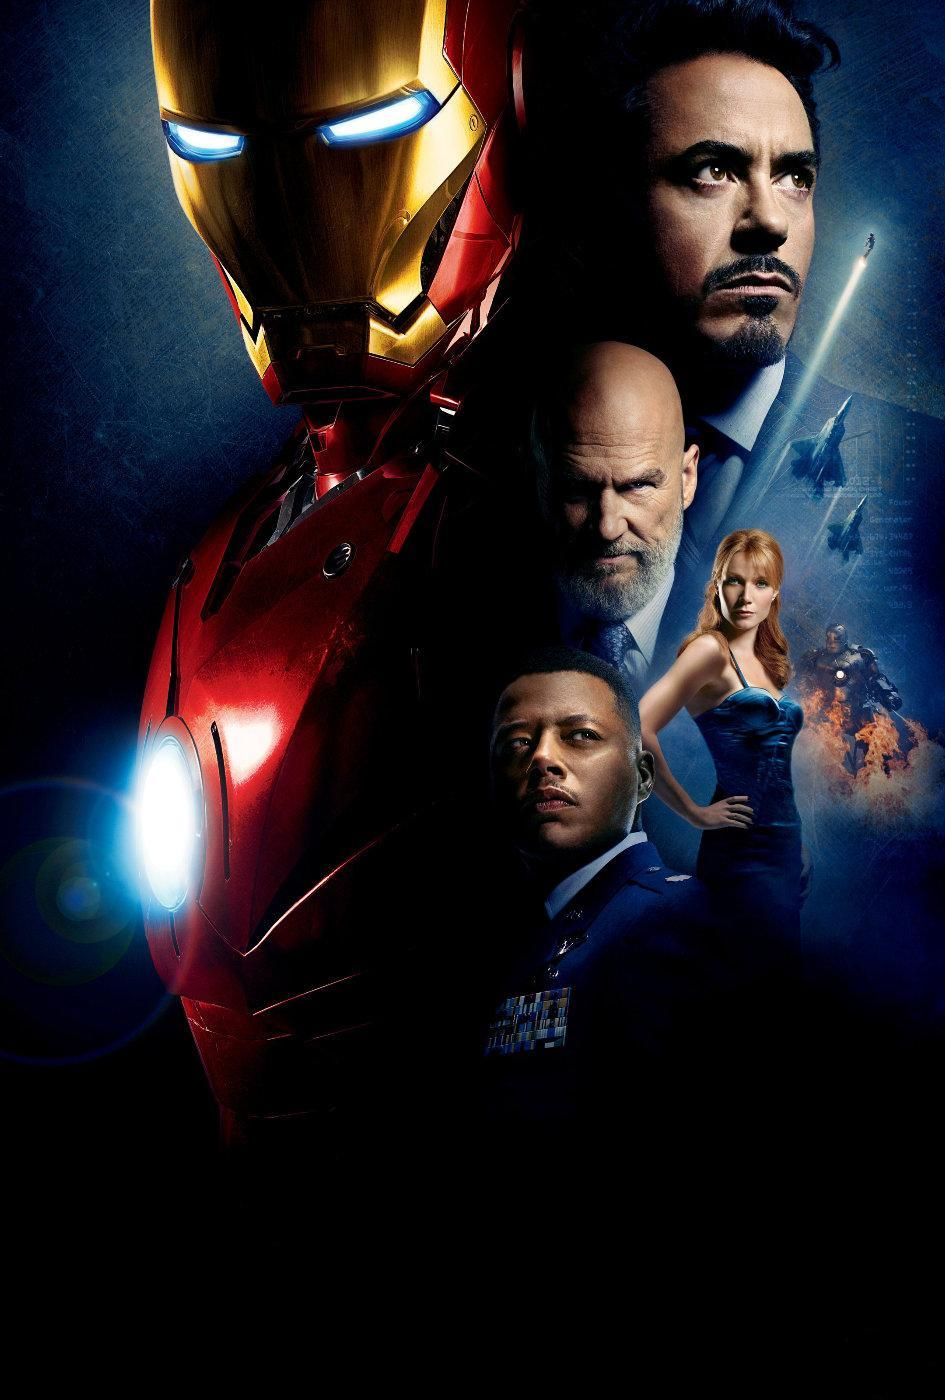 10019 download wallpaper Cinema, Iron Man screensavers and pictures for free